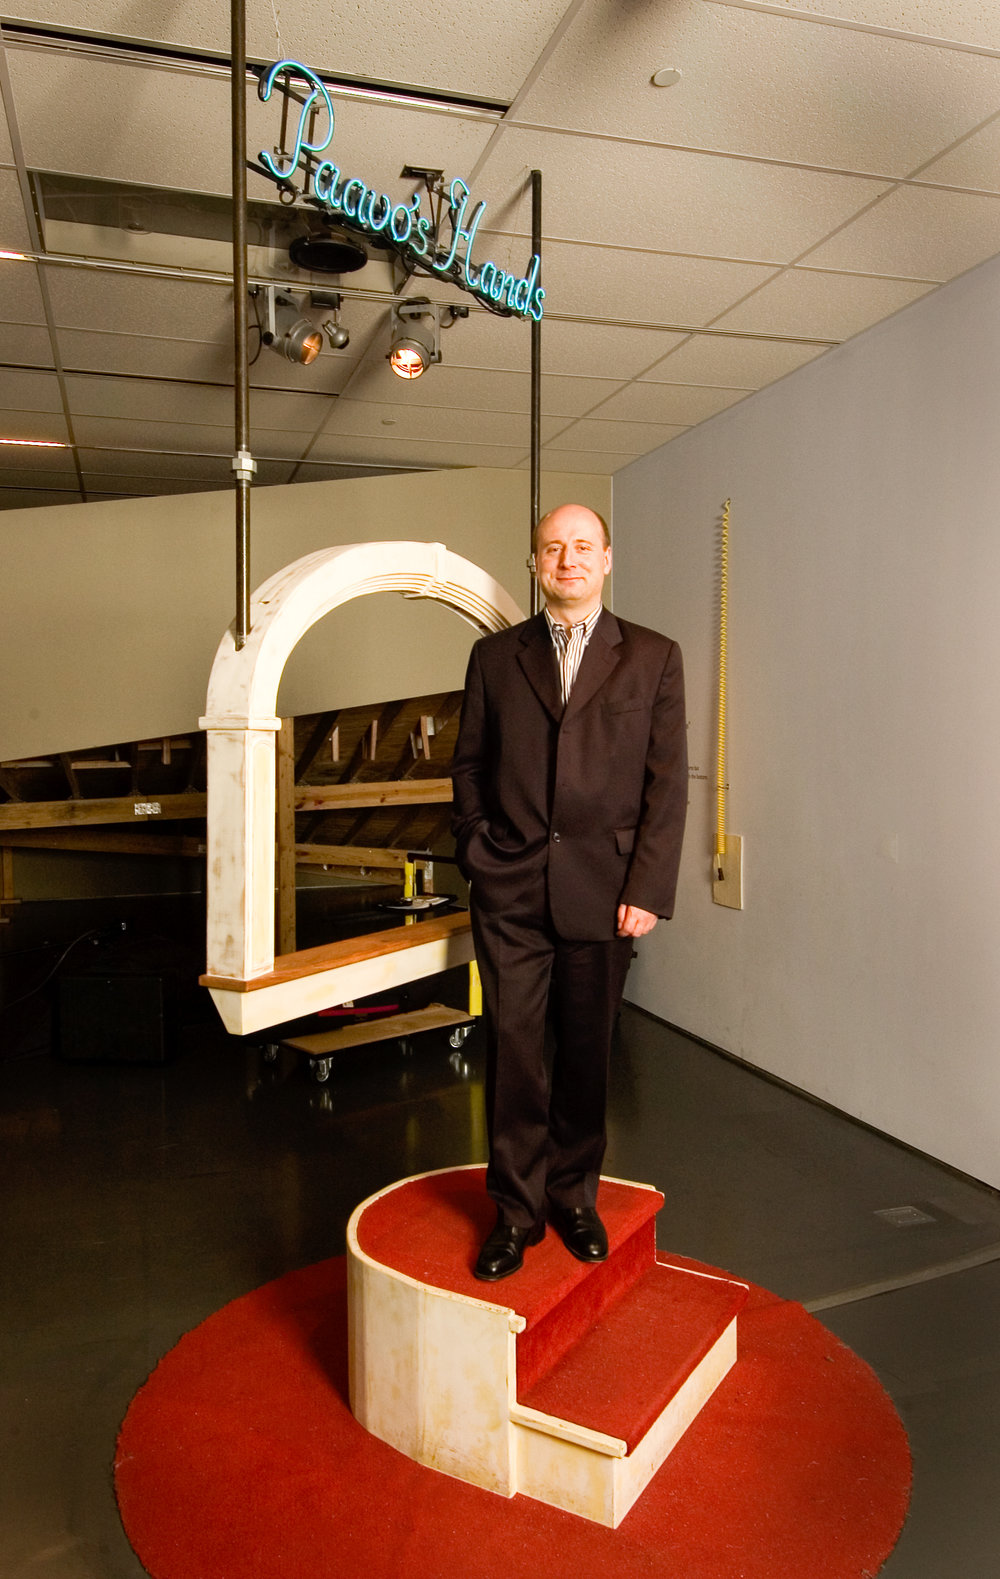 Paavo's Hands  (photographed with Paavo Järvi - music director / conductor of the Cincinnati Symphony Orchestra, 2001-2011)  wood, sensors, computer, neon  8 x 4 x 3' / 2003